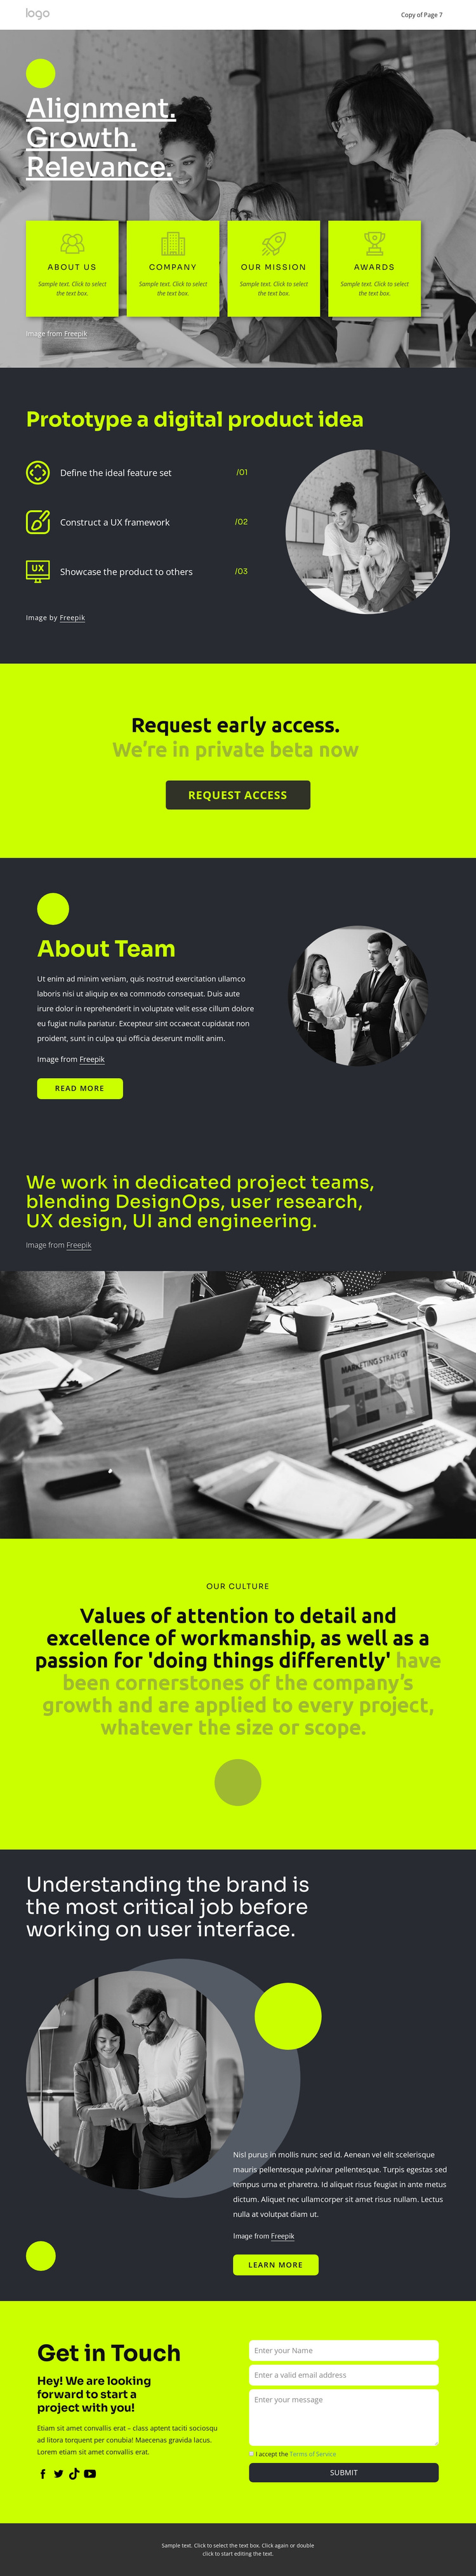 Build great digital products Template